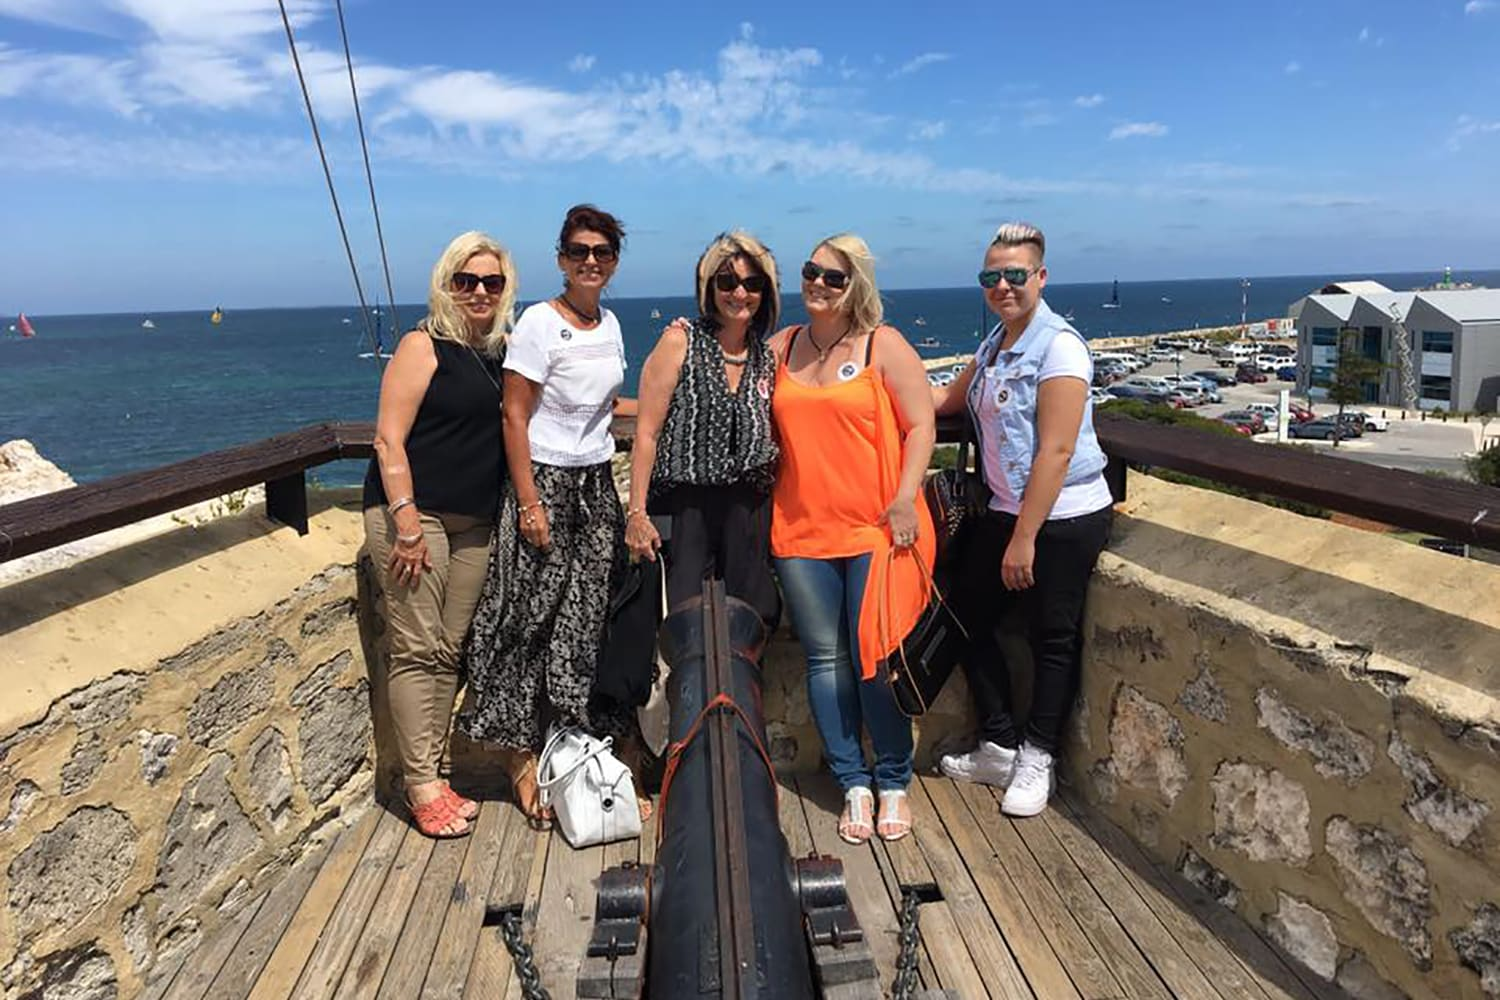 Fremantle Craft Beer Tour, Lunch and Cruise - Full Day - For 2